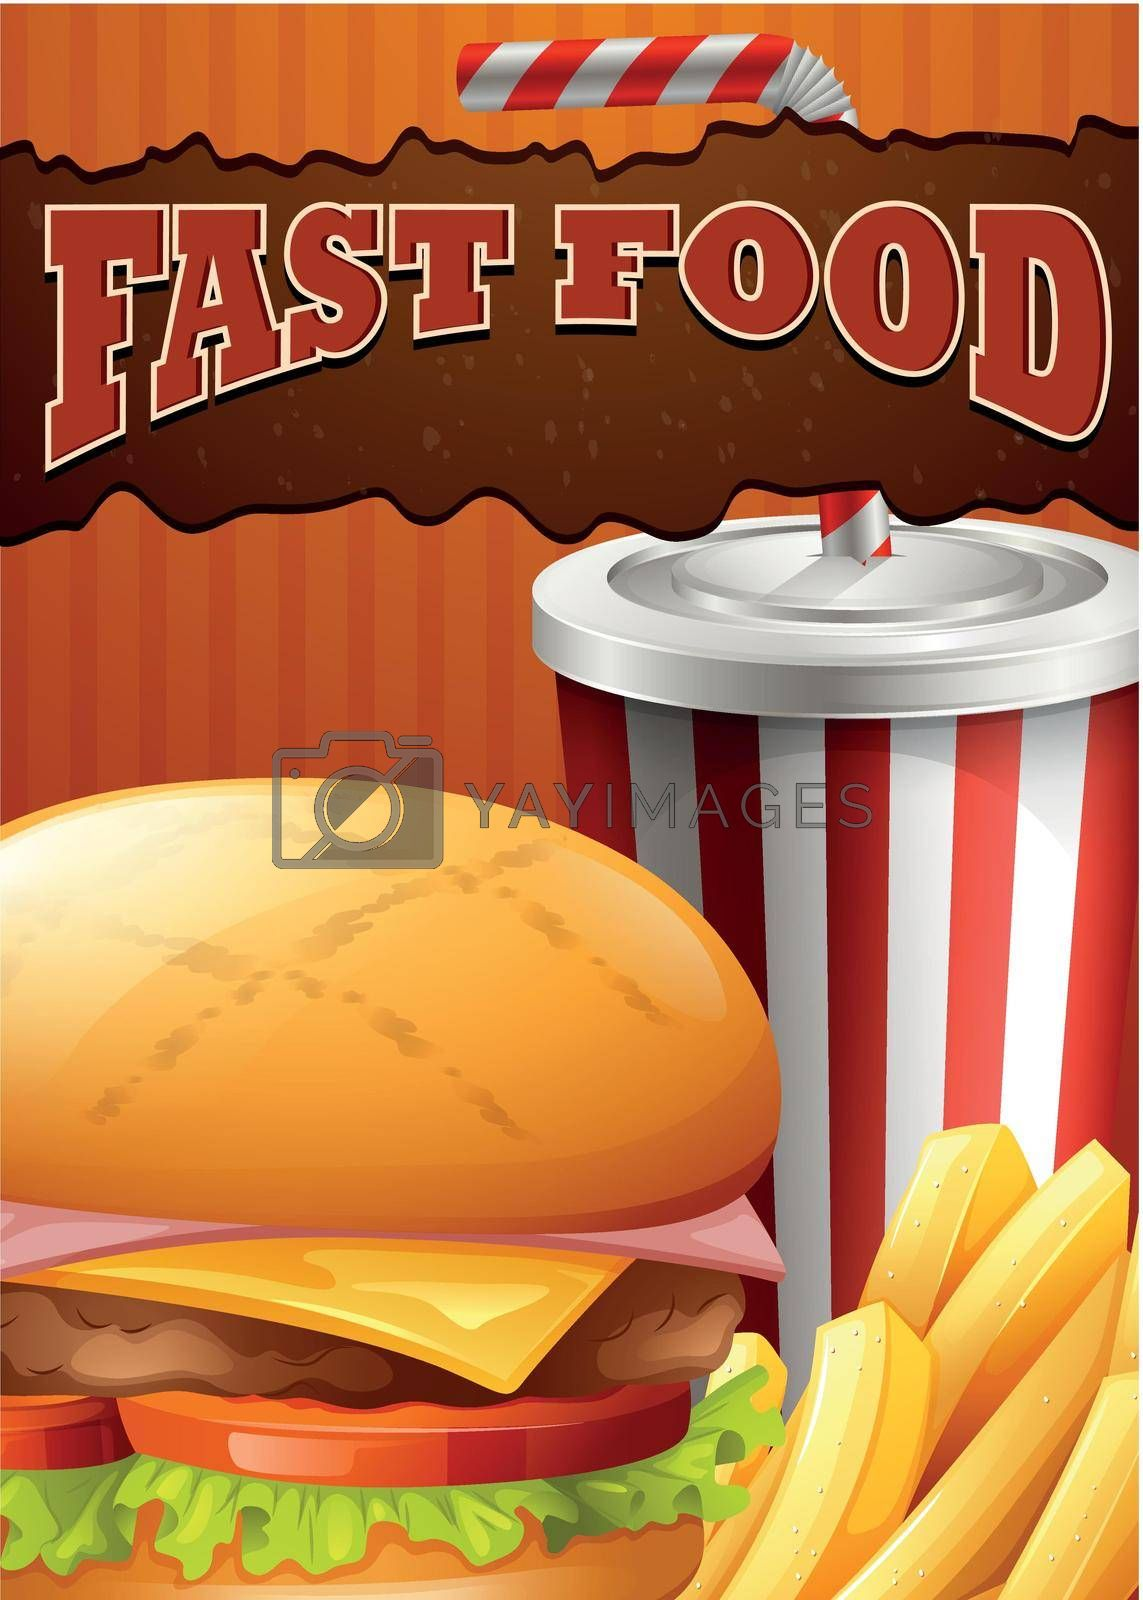 Fast food poster with hamburger and drink illustration